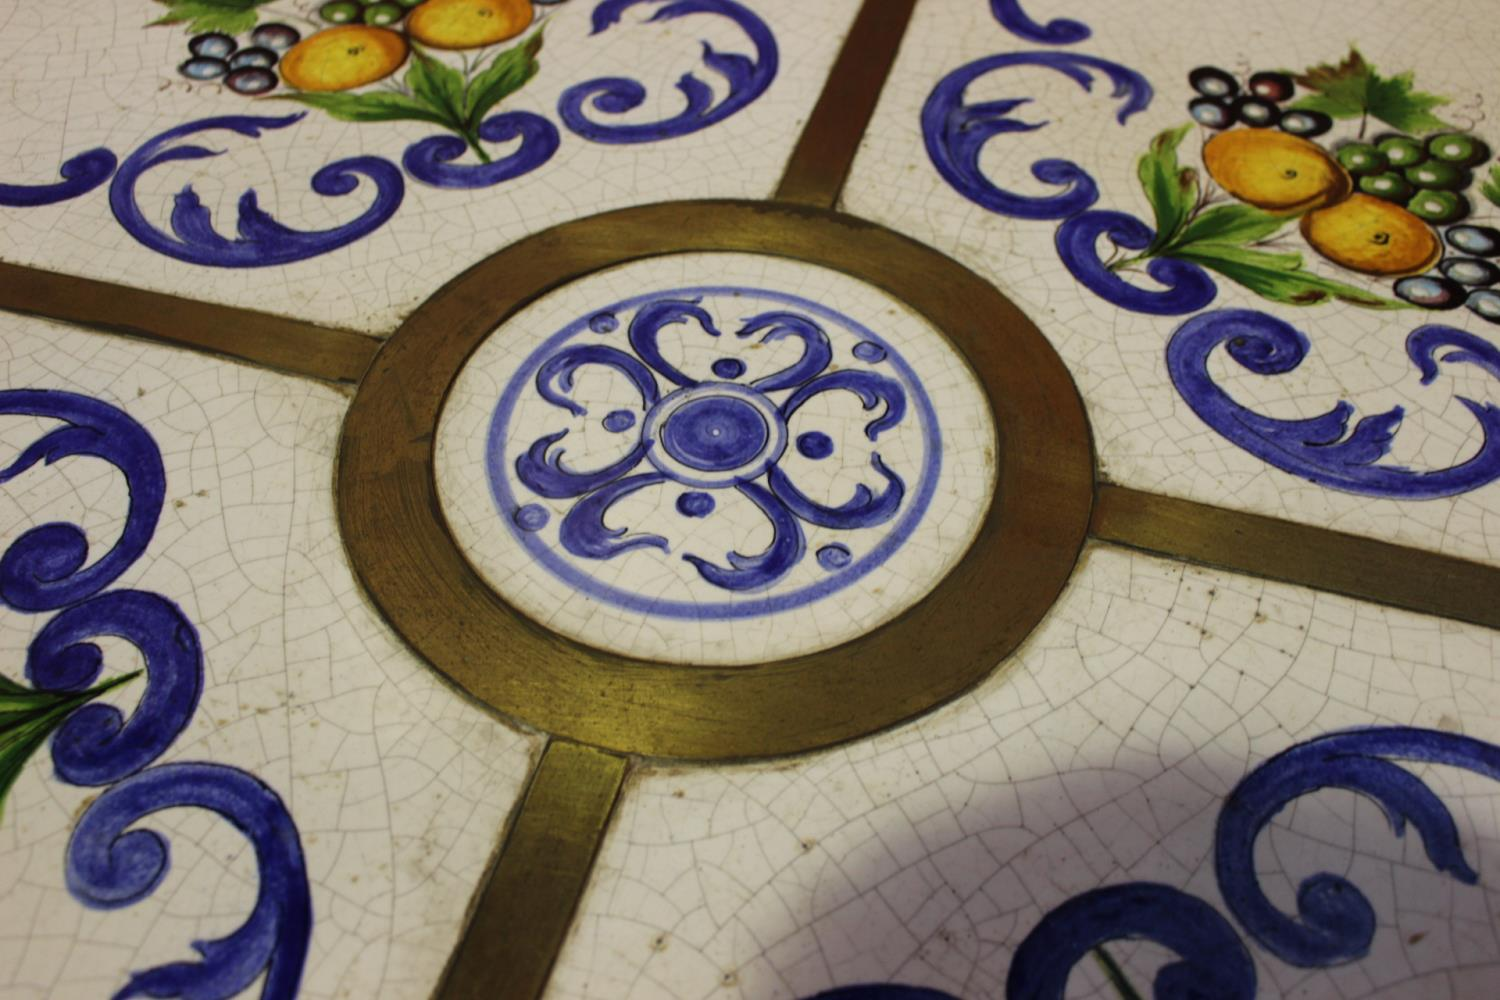 Ceramic dining room table - Image 2 of 2